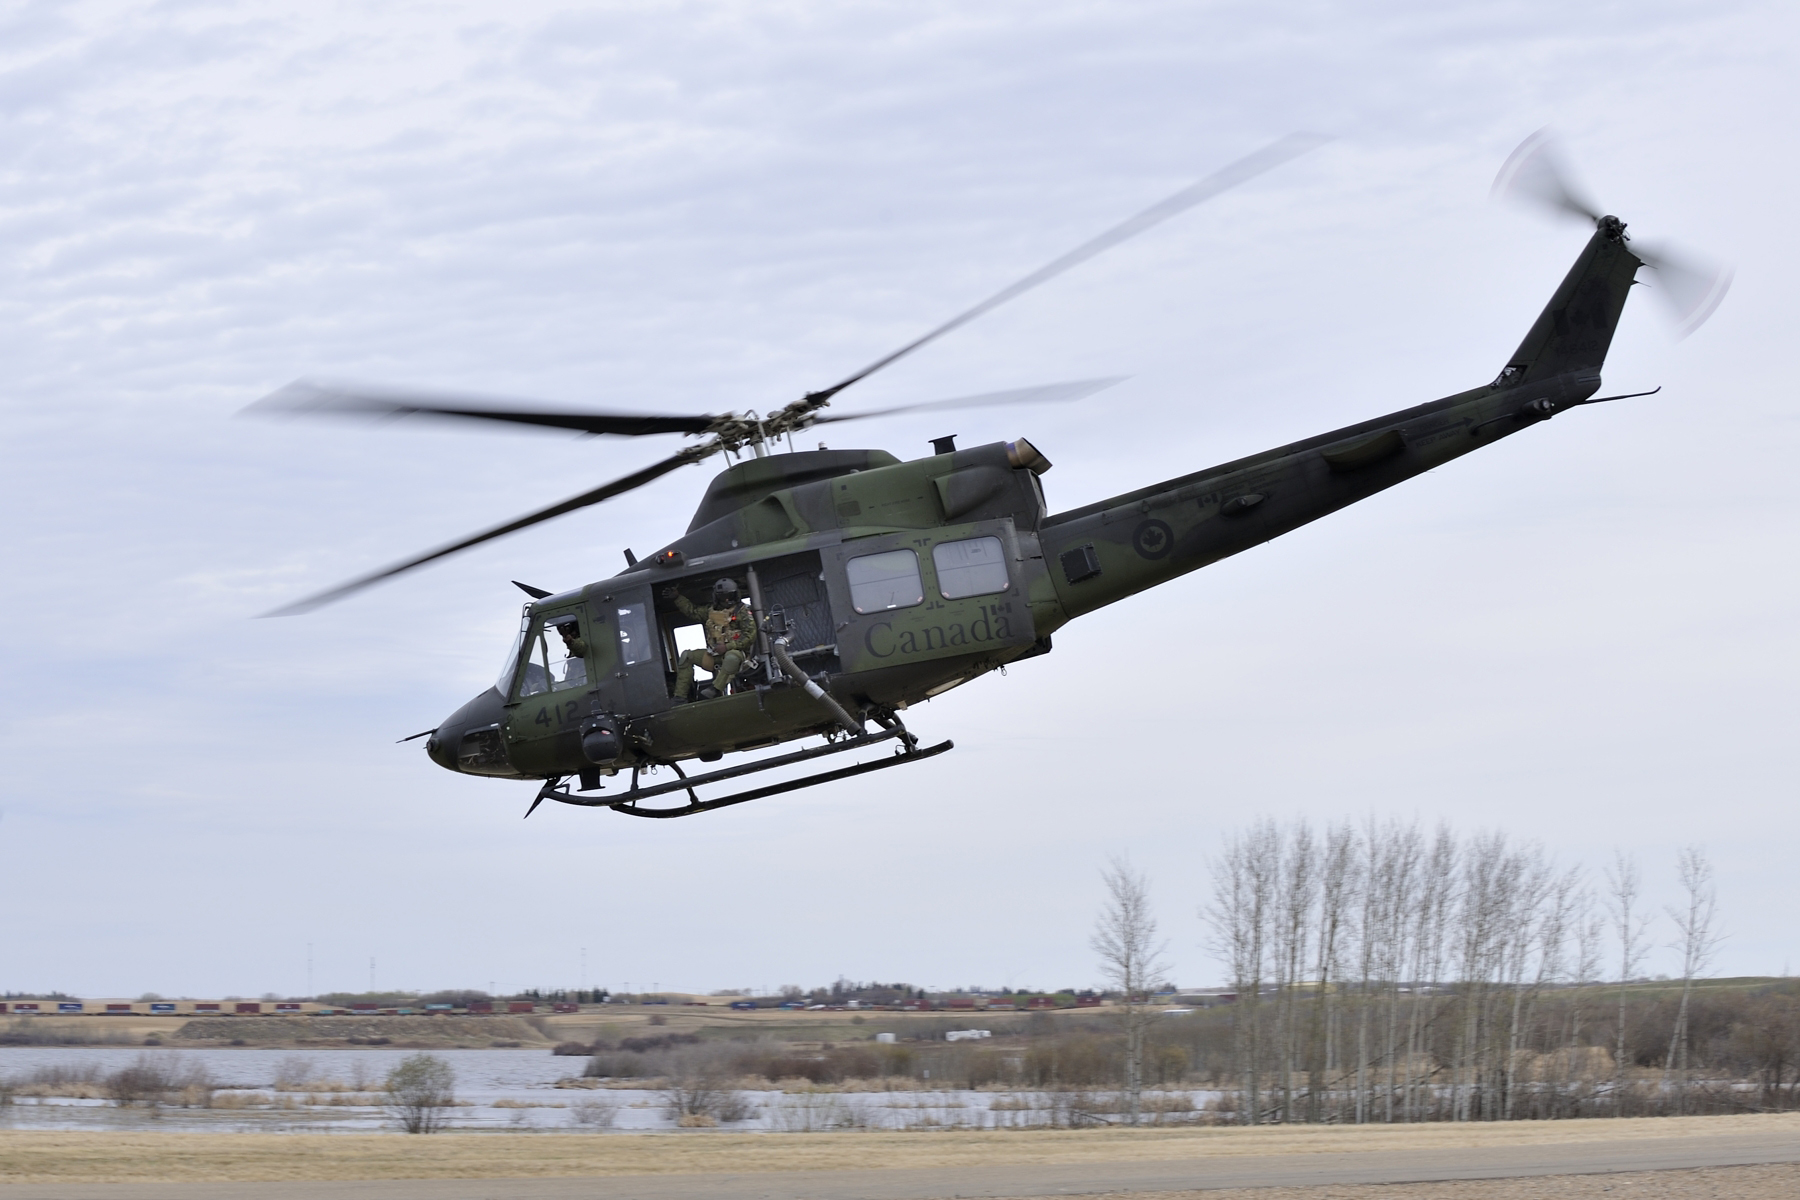 Crewmembers on board a Griffon helicopter from 430 Squadron return to the main training area of Exercise MAPLE RESOLVE on April 29, 2015.